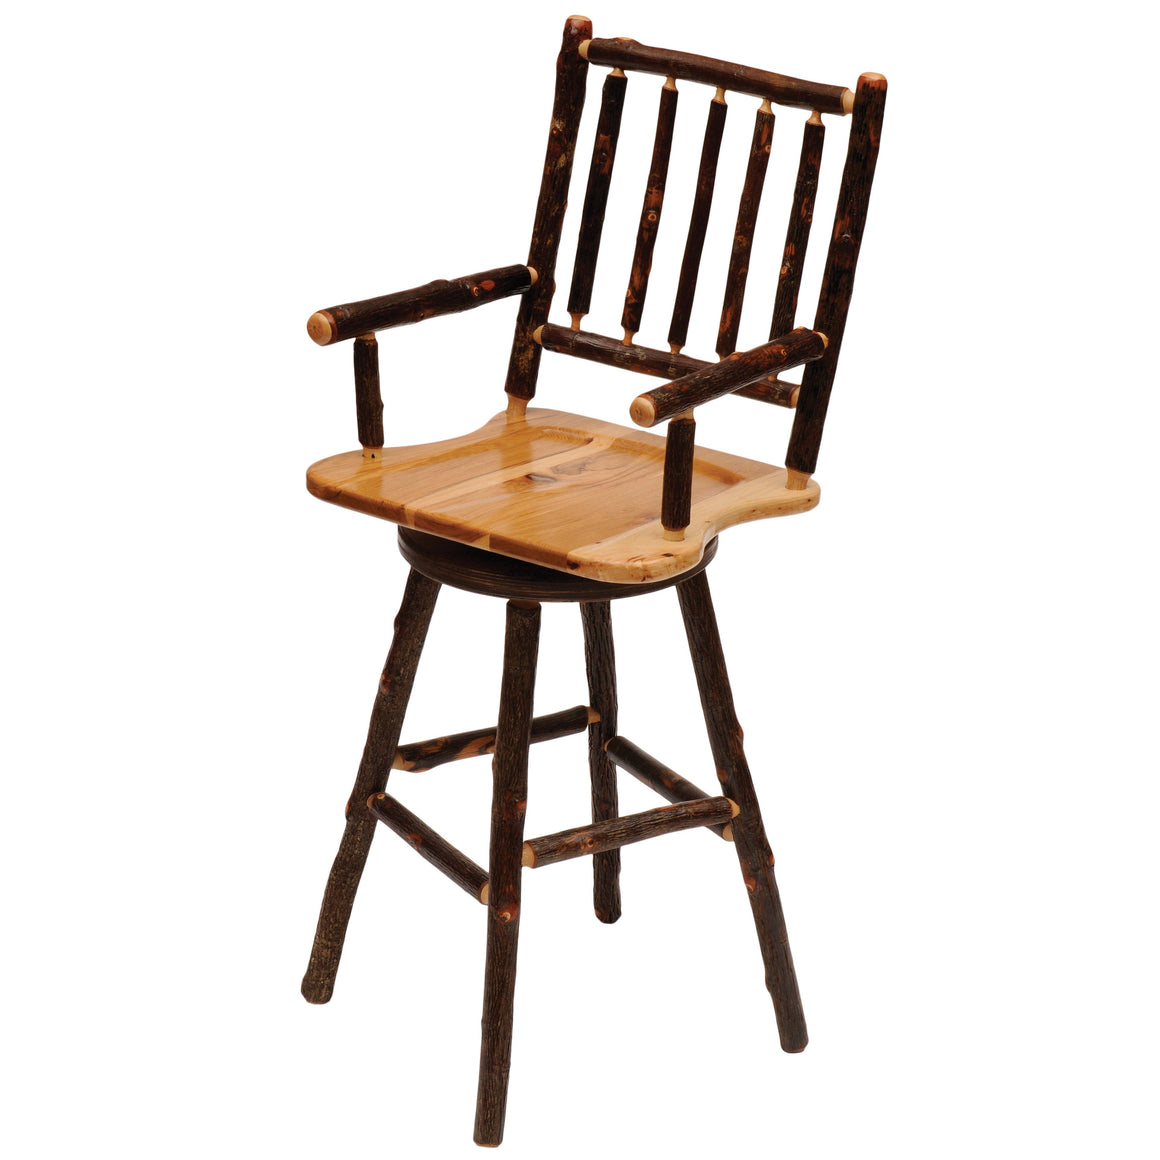 "Natural Hickory Log Swivel Bar Stool With Arms - 30"" high - Standard Finish Stool Fireside Lodge Antique Oak - Wood Seat"